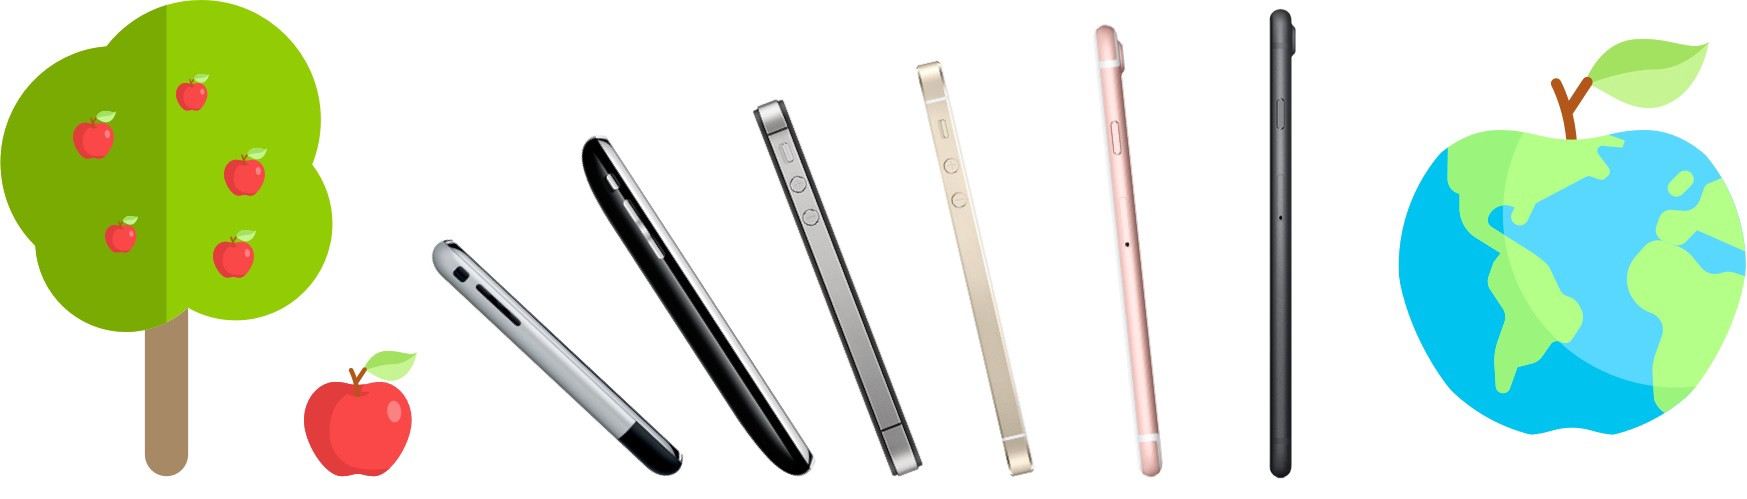 10 years of iphone from the fall of apple to becoming a global